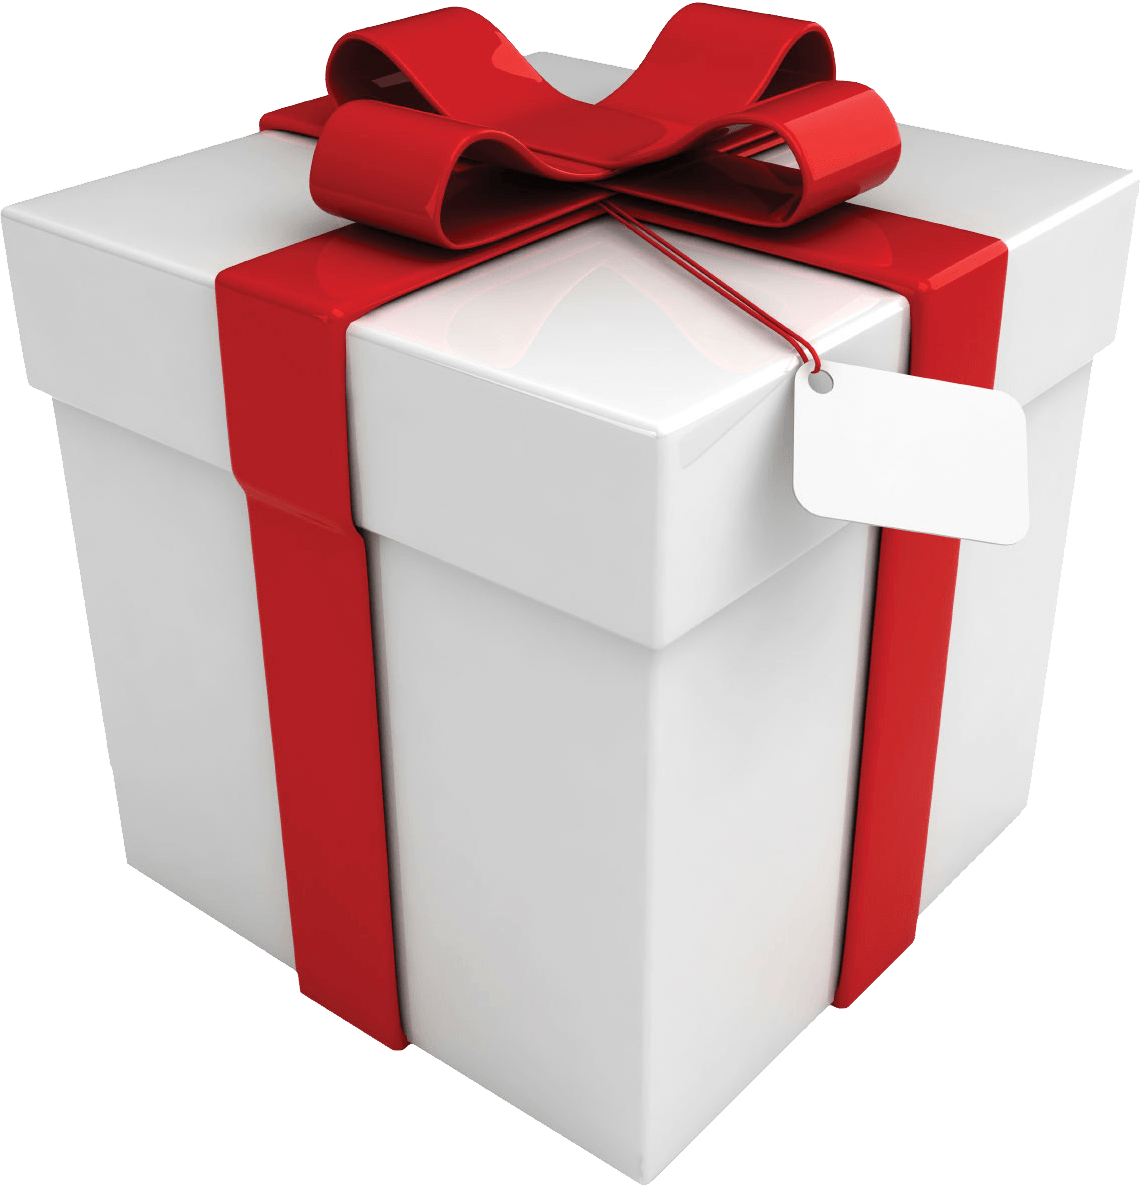 Gift Box With Ribbon PNG Transparent Image Free.